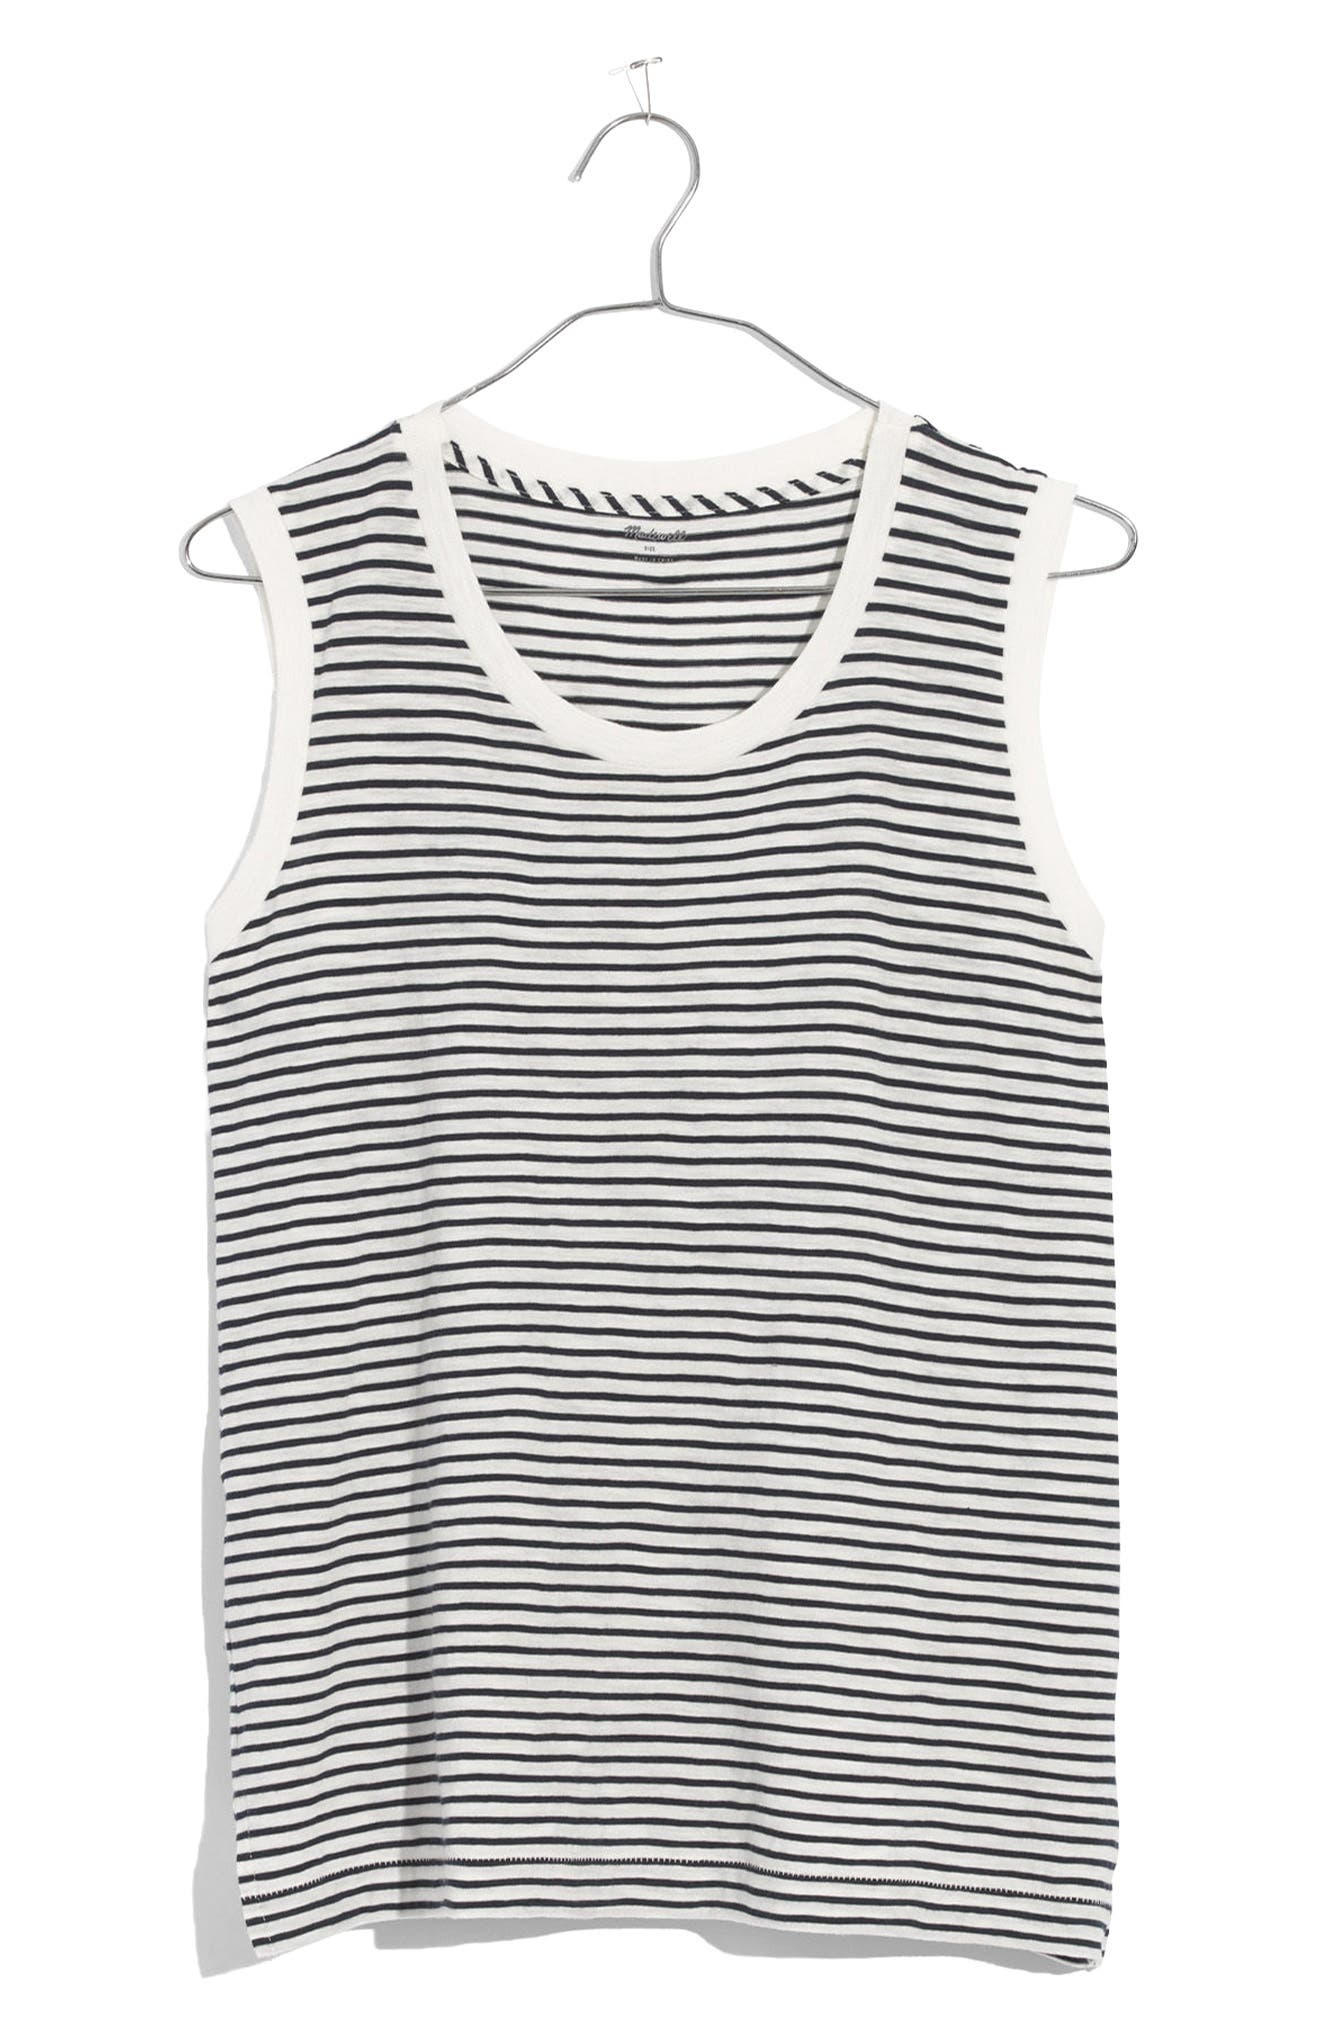 Alternate Image 1 Selected - Madewell Whisper Cotton Stripe Crewneck Muscle Tank